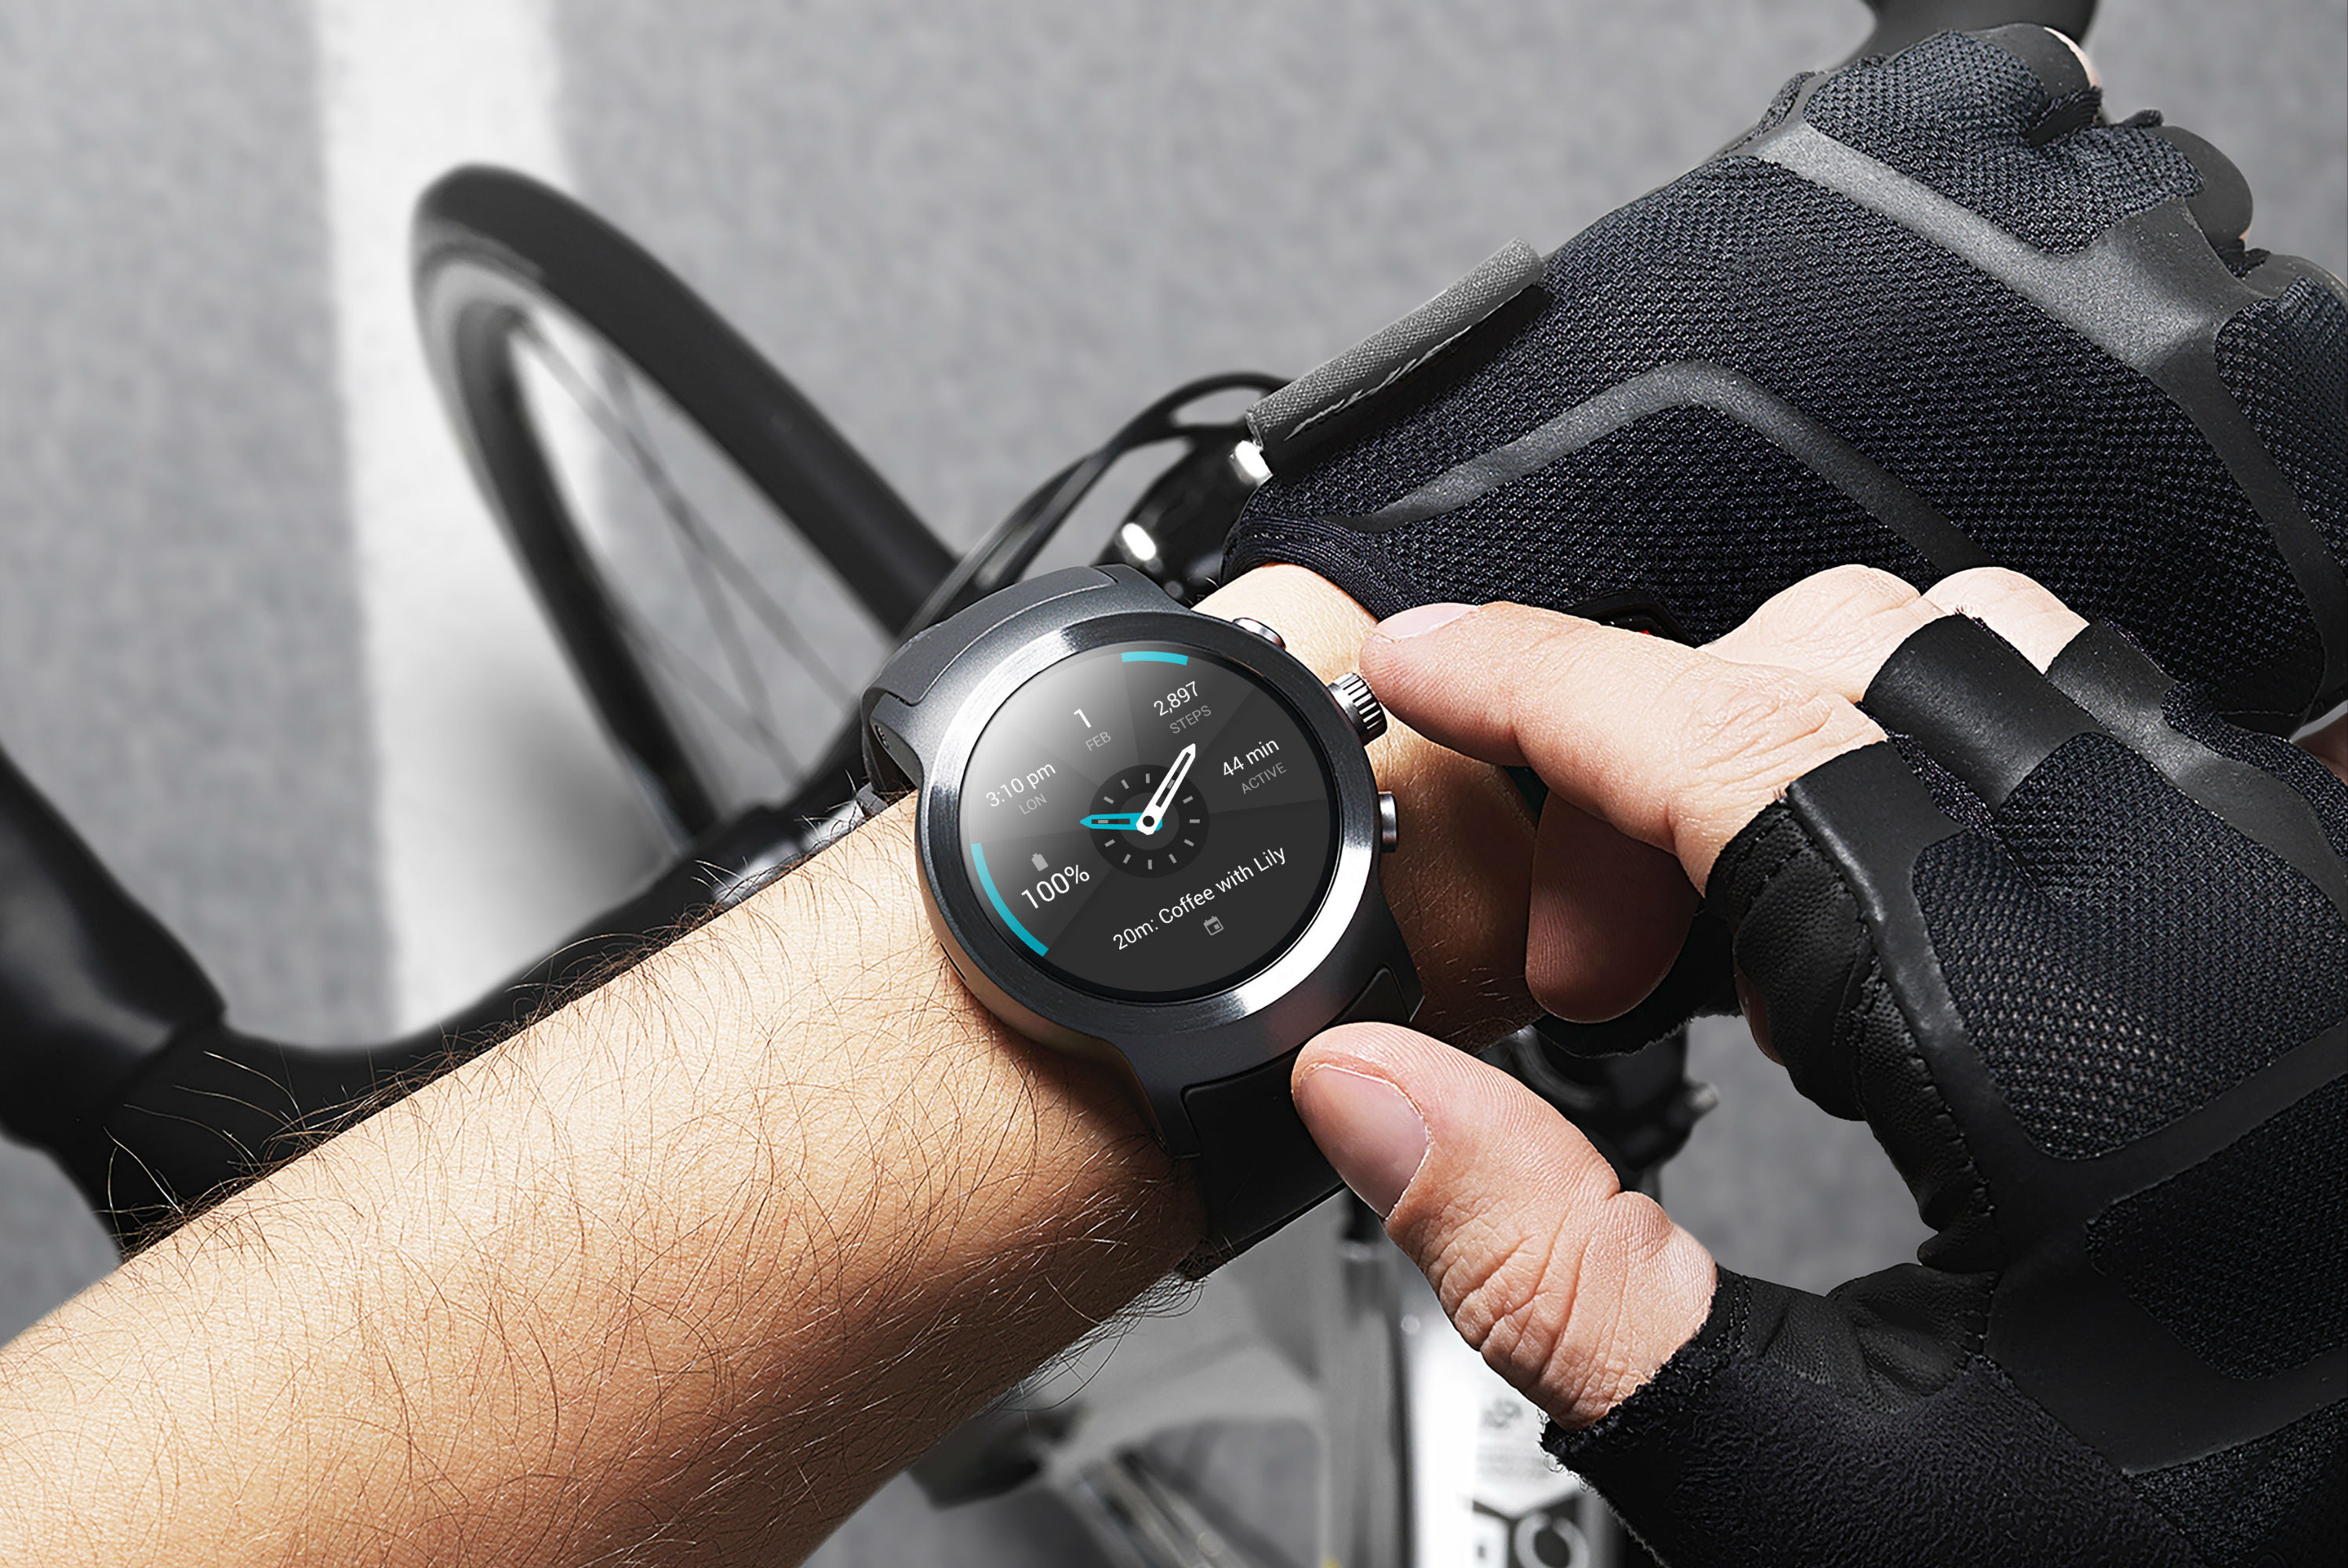 LG WATCH Sport bike.jpg